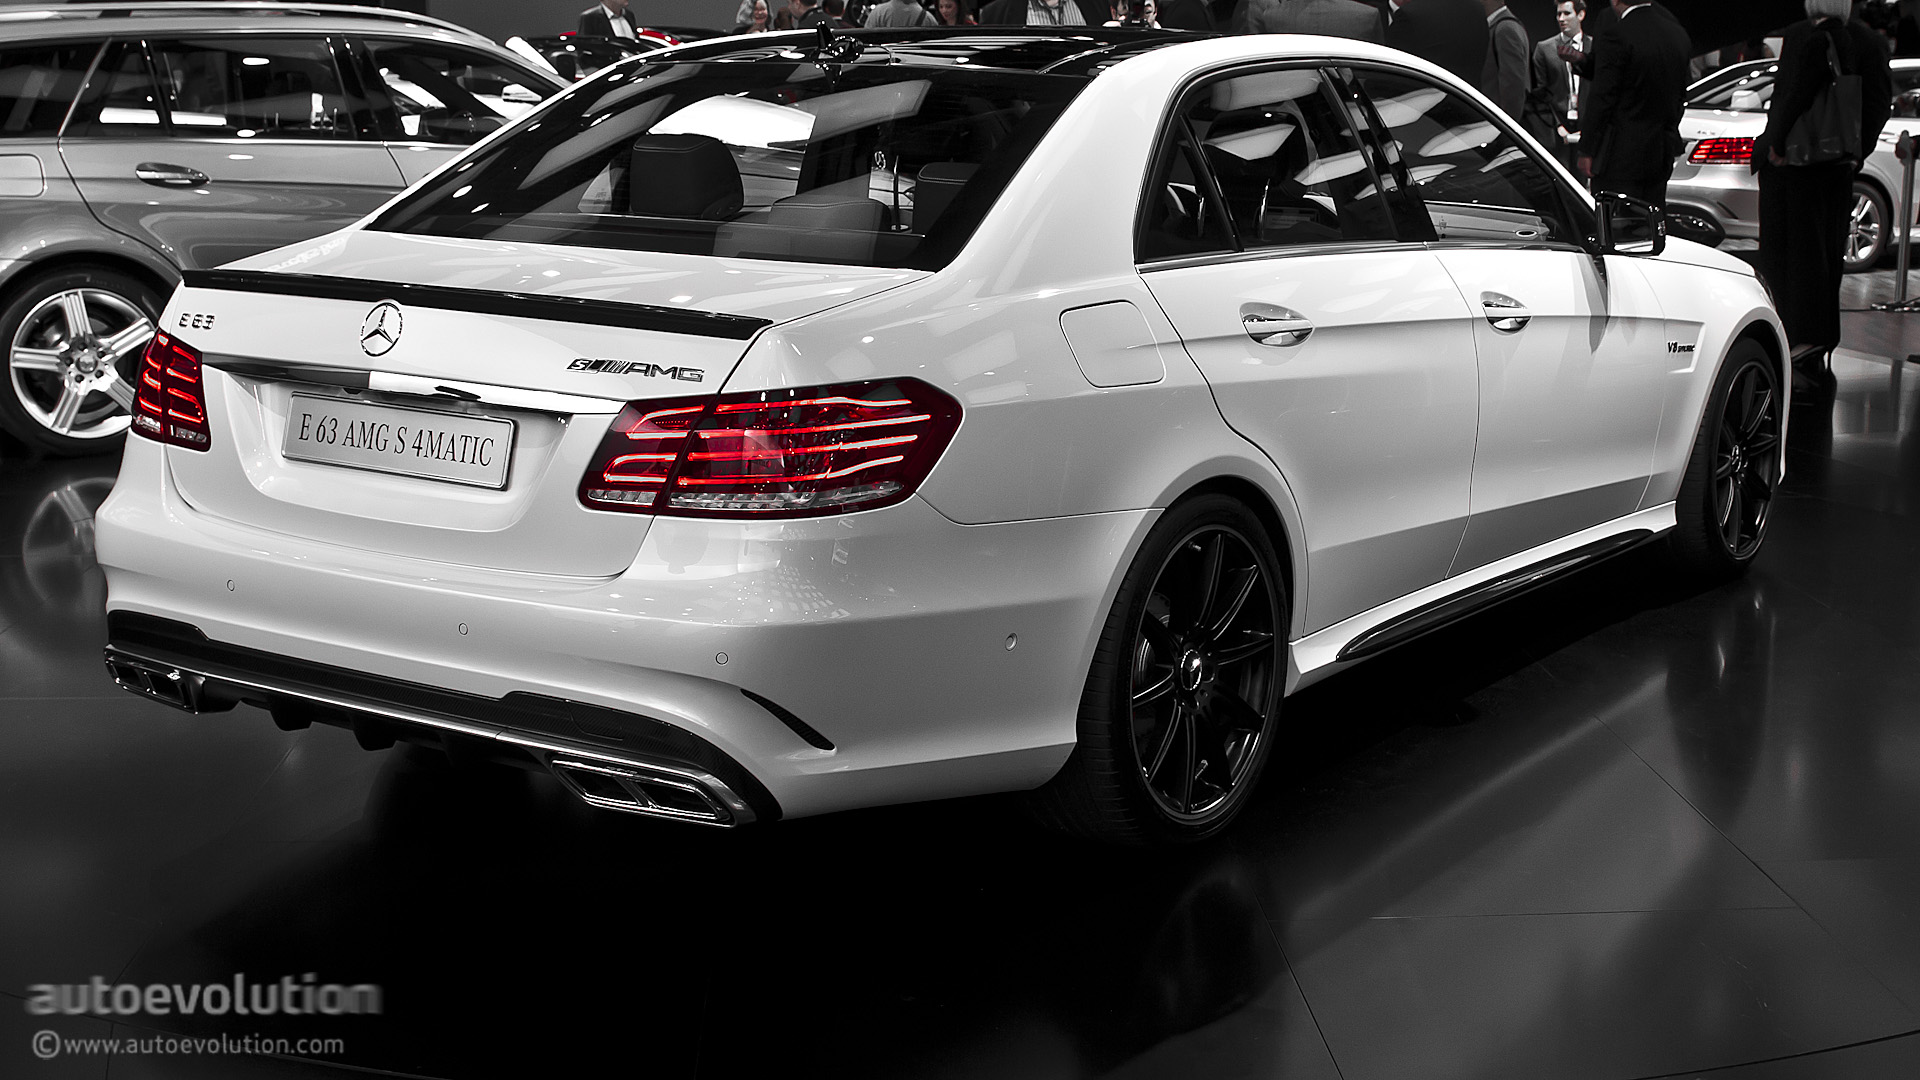 2013 mercedes benz e63 amg s 4matic photo. Black Bedroom Furniture Sets. Home Design Ideas